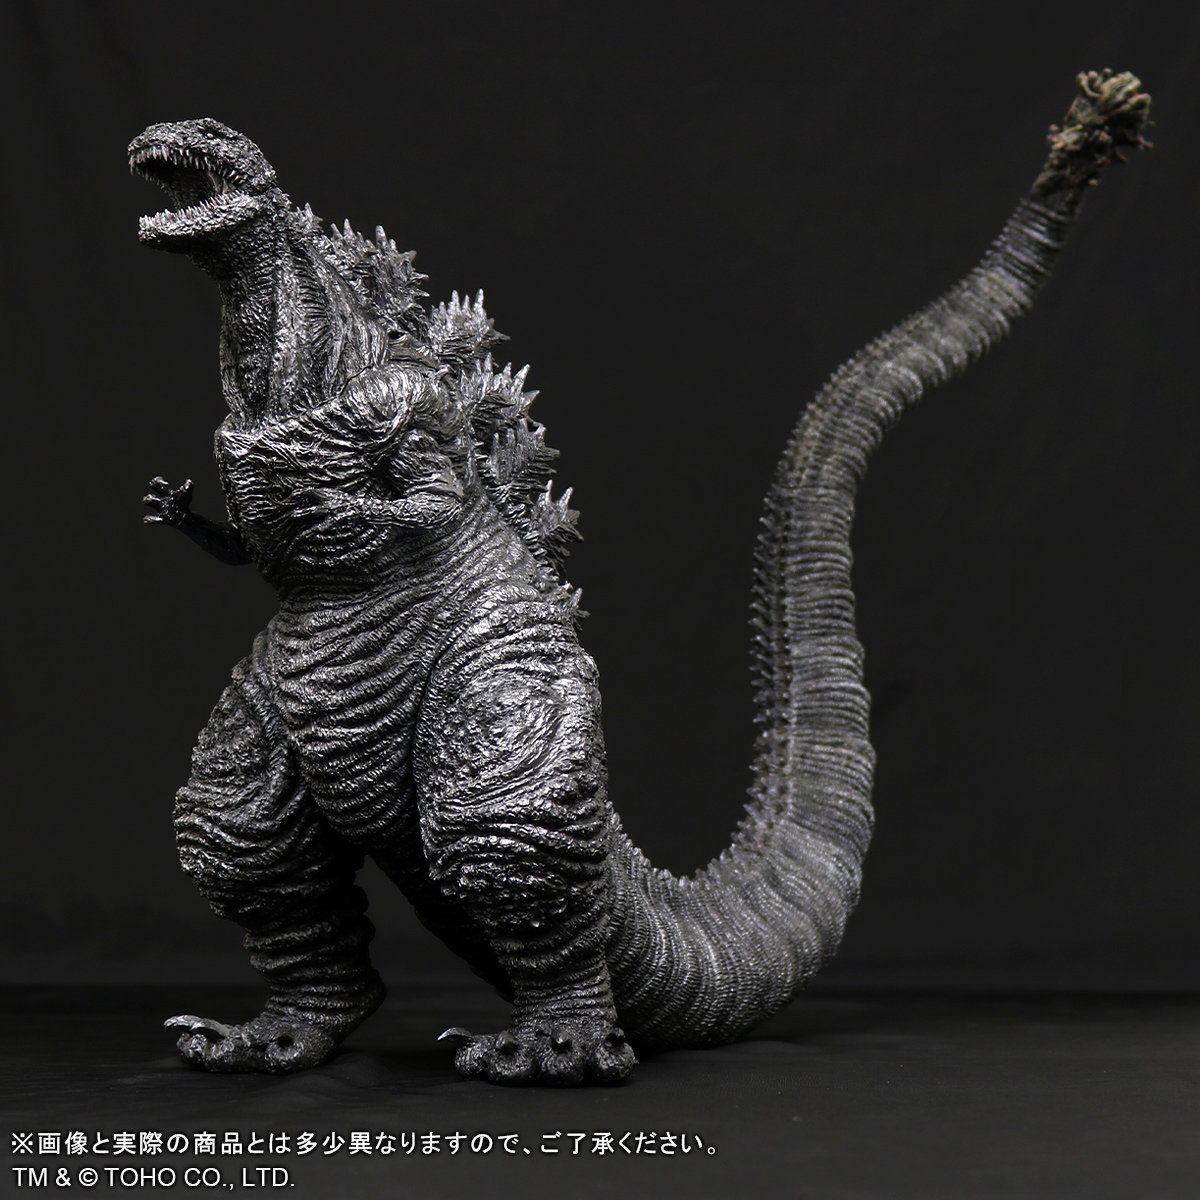 Large Monster Series Godzilla 2016 Frozen Version vinyl figure by X-Plus.